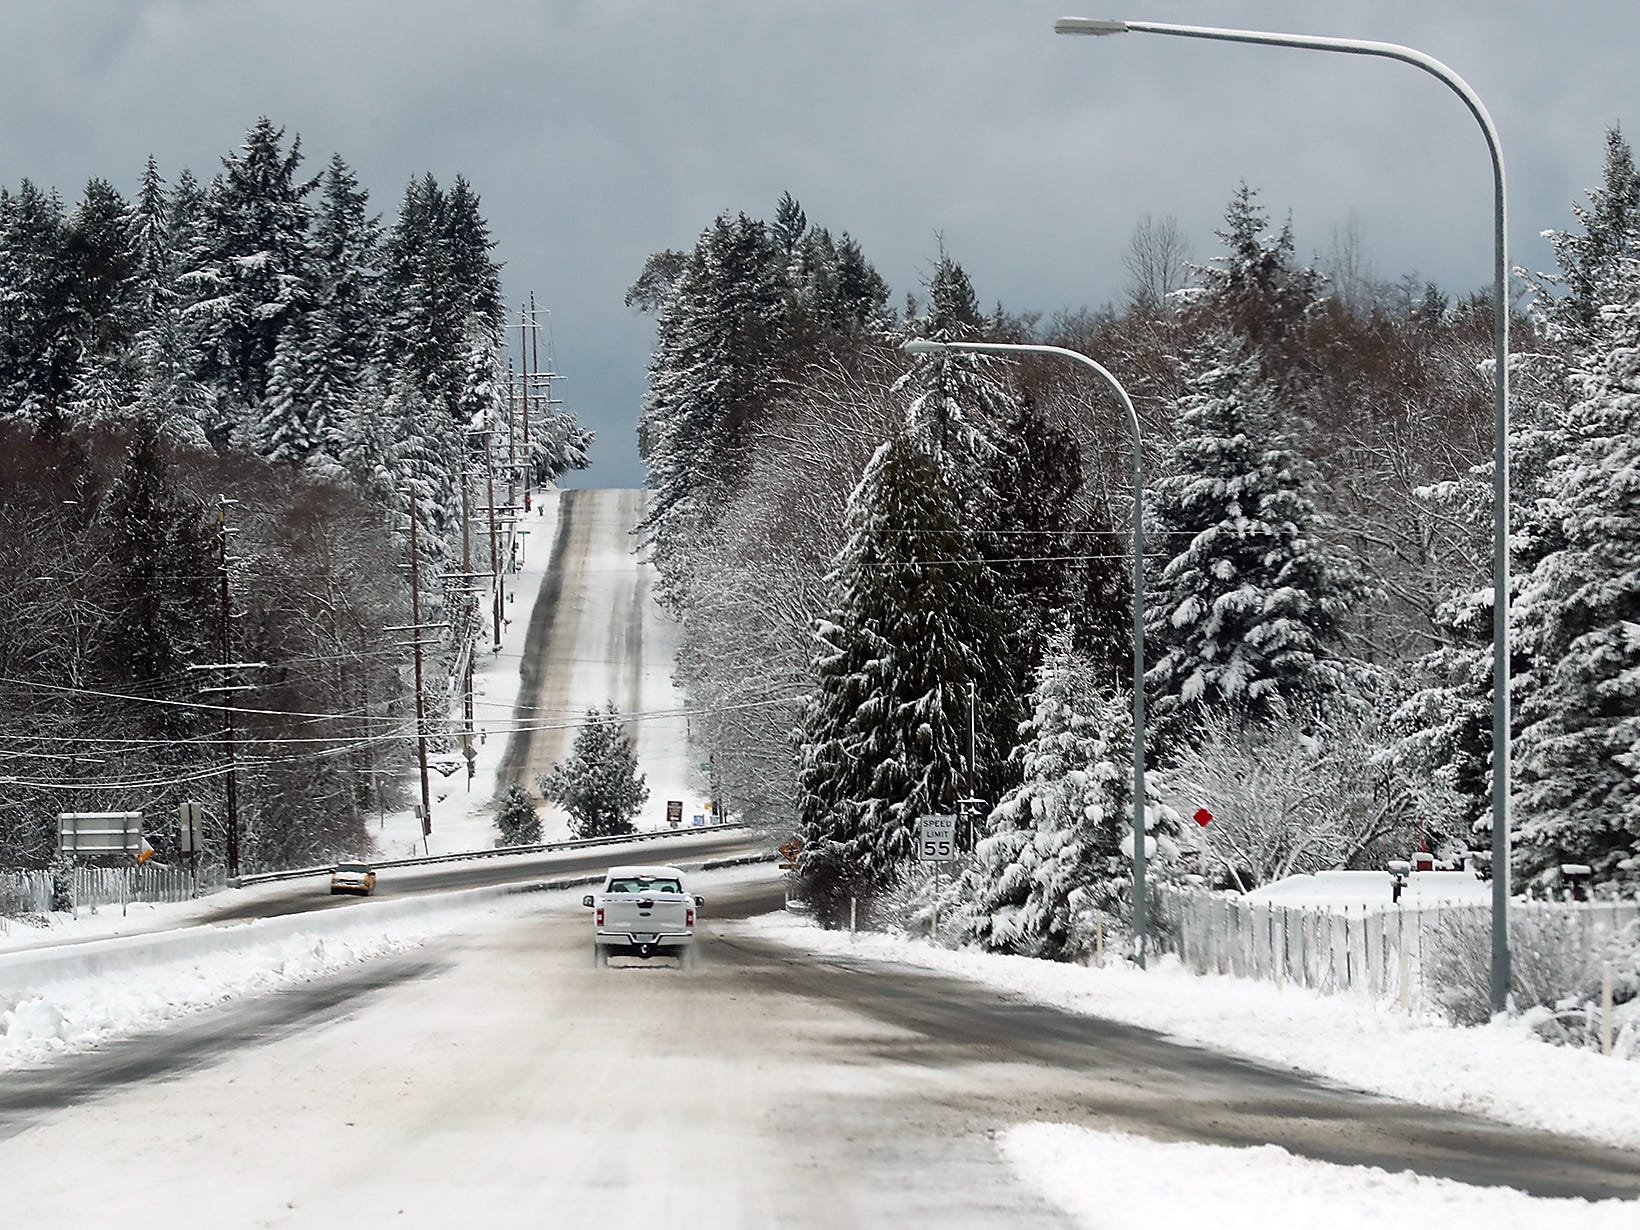 A snowy highway 303 in Silverdale on Saturday, February 9, 2019.